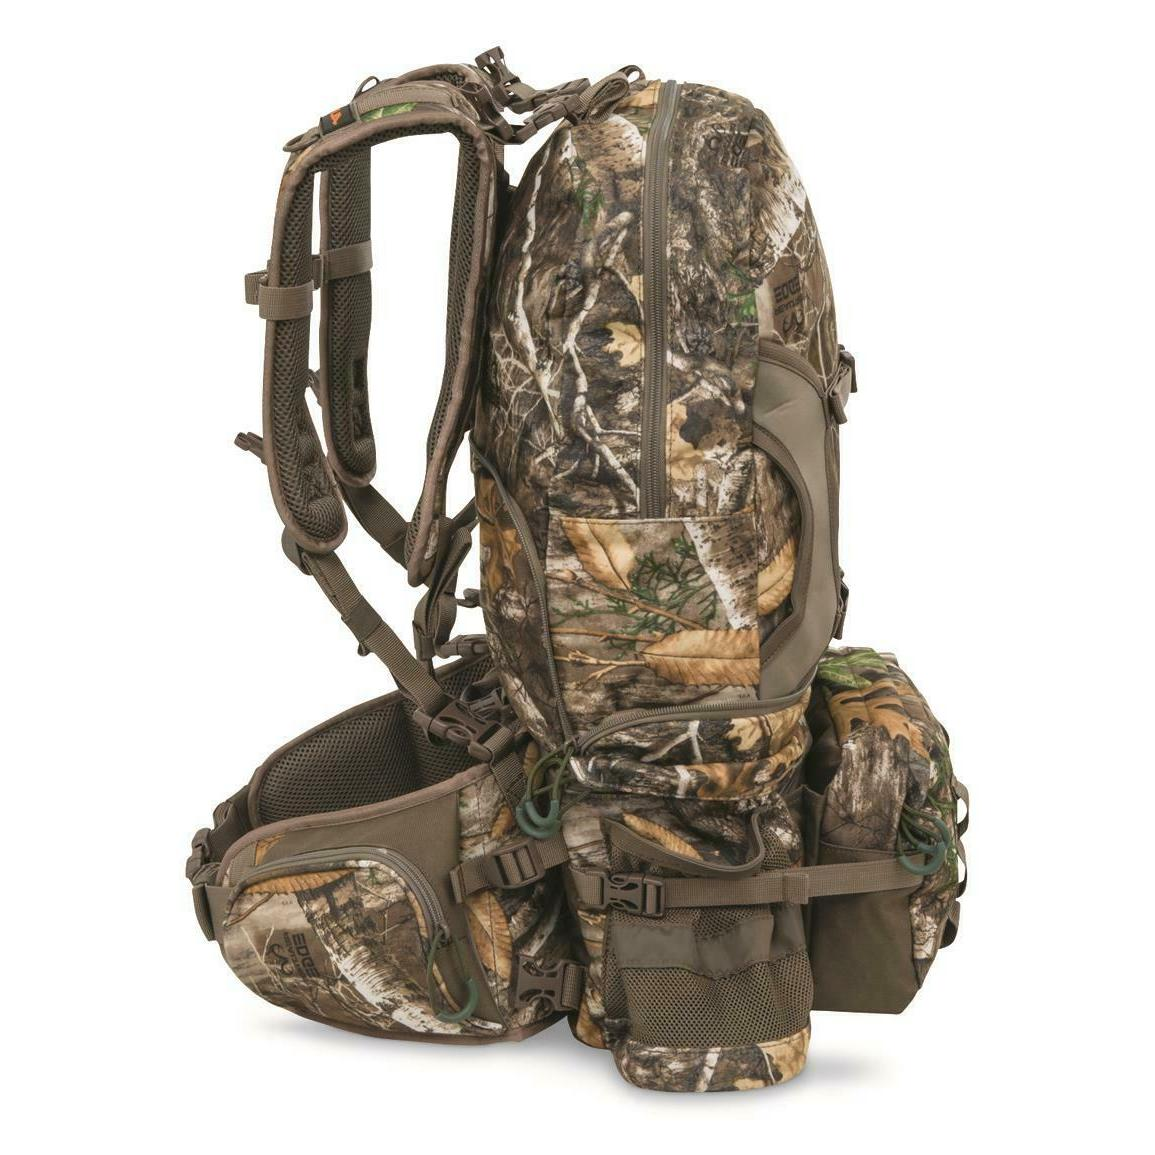 ALPS Hunting Pack Padded Waist Sturdy